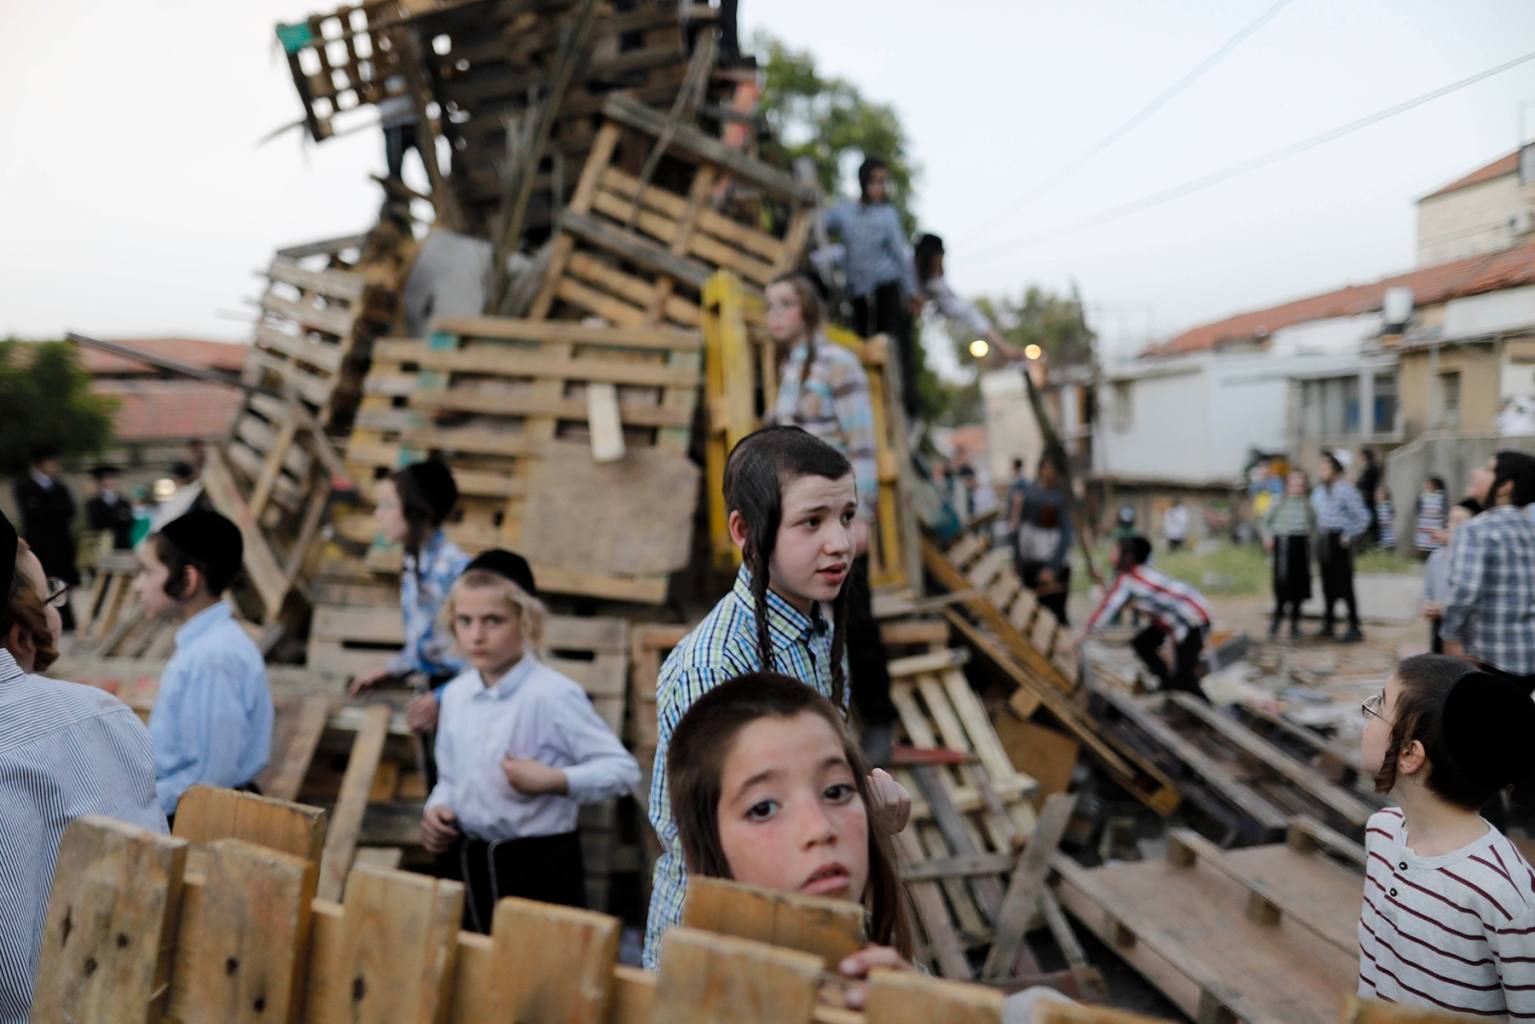 Ultra-Orthodox Jewish children built a bonfire to be lit in the evening in Jerusalem's Mea Shearim neighborhood on May 22 to celebrate the Jewish holiday of Lag BaOmer, marking the anniversary of the death of Talmudic sage Rabbi Shimon Bar Yochai approximately 1,900 years ago. MENAHEM KAHANA/AFP/Getty Images